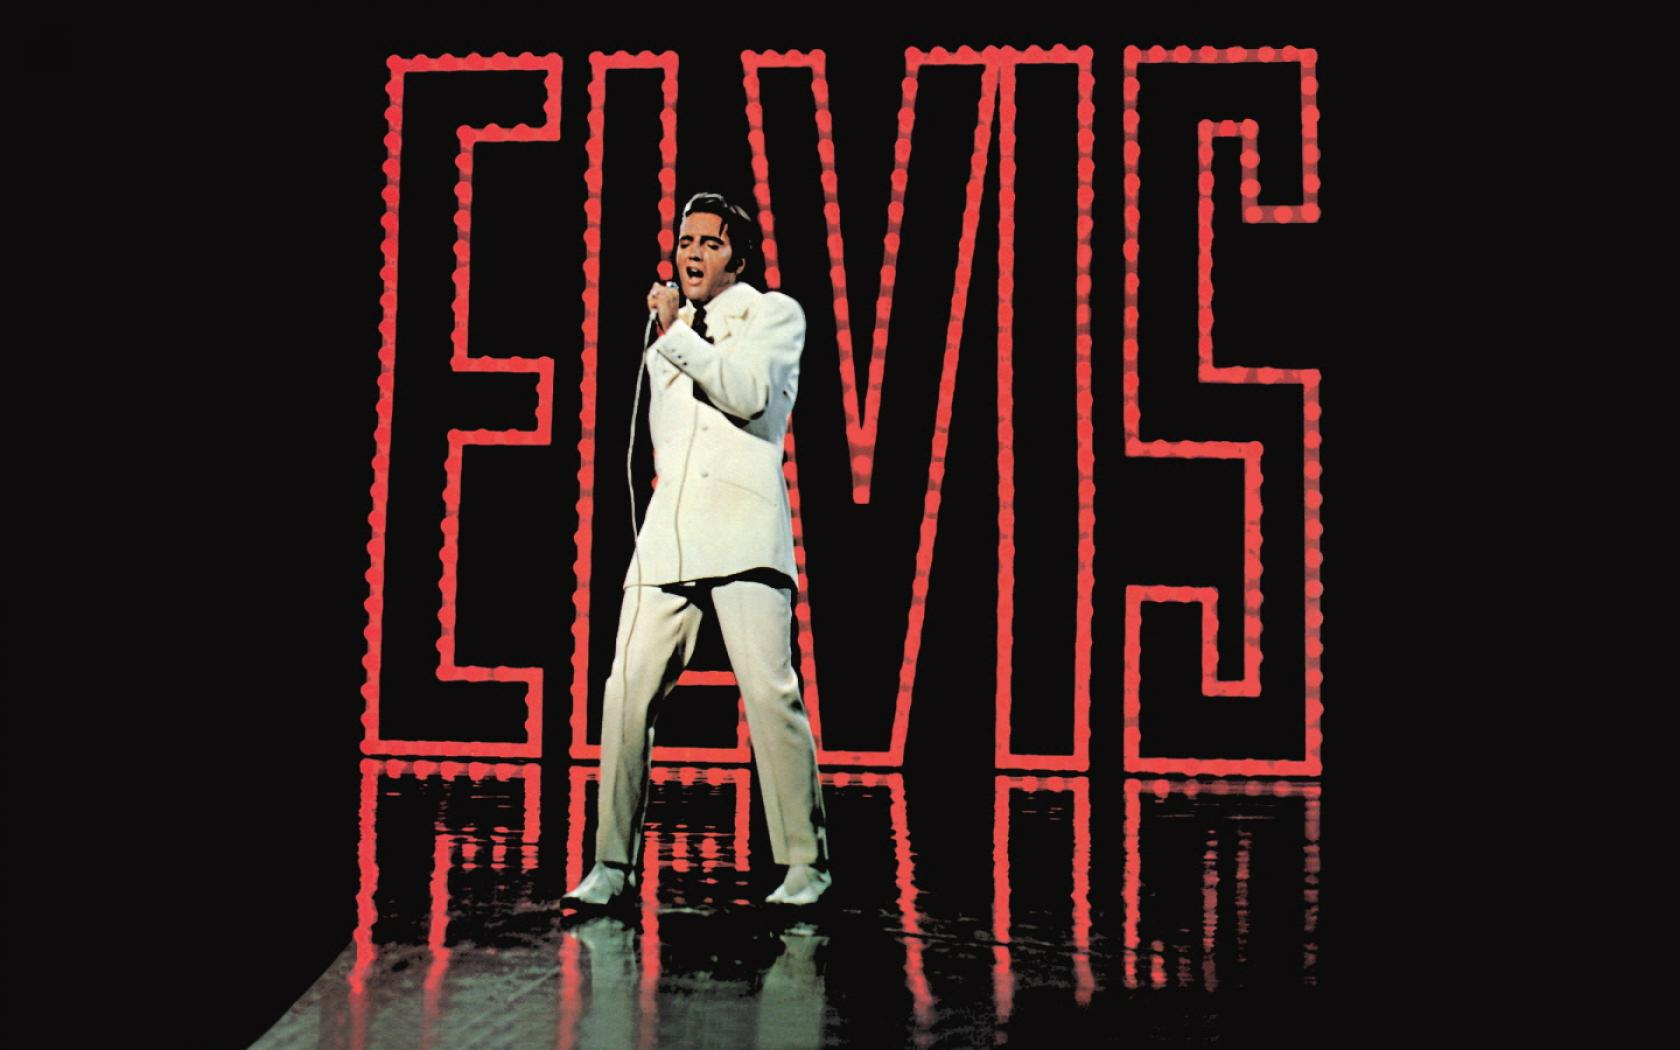 if_can_dream_elvis_presley_1968_king_music_1680x1050_hd-wallpaper-436646